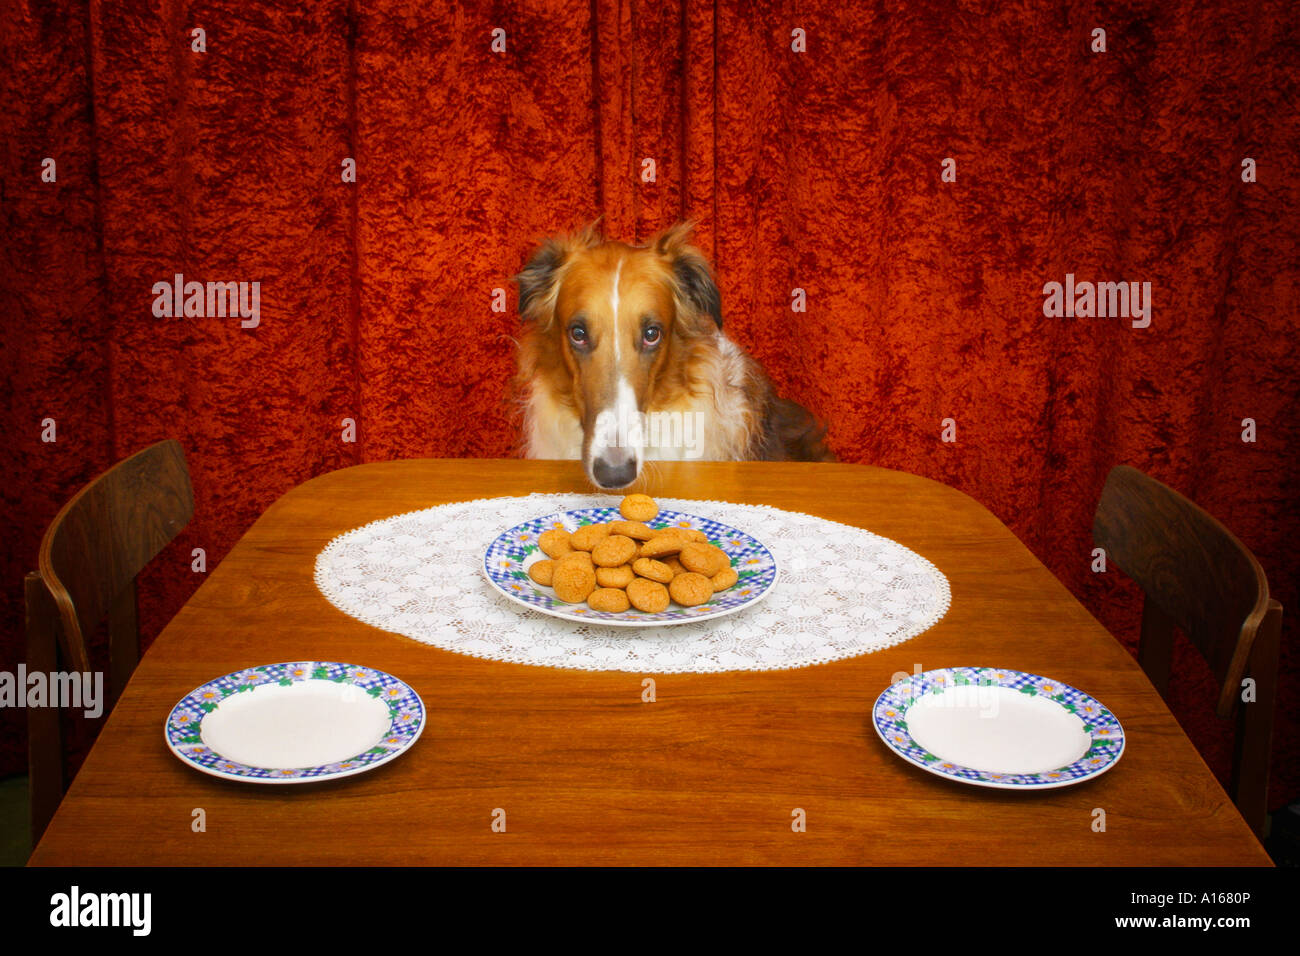 Borzoi dog and plate of biscuits - Stock Image